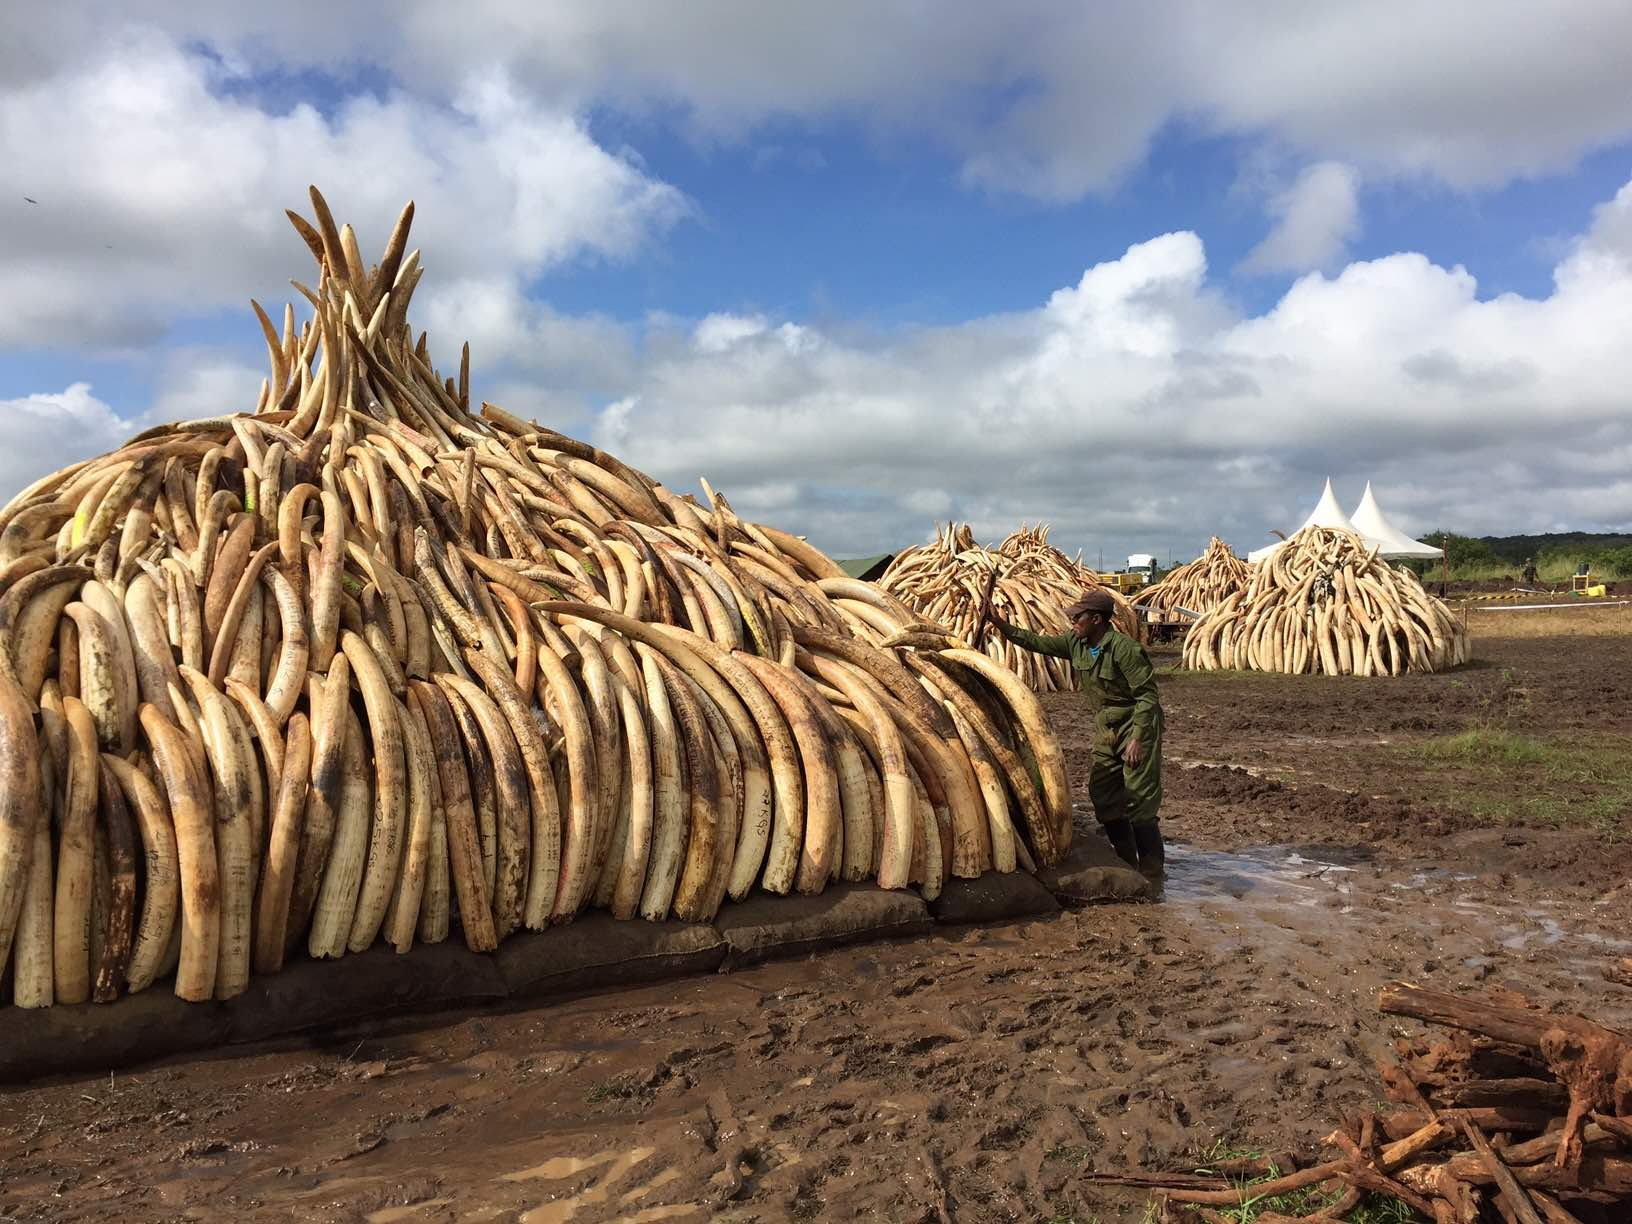 More than 105 metric tons of ivory will be set on fire tomorrow. Photo courtesy of Wild Aid.